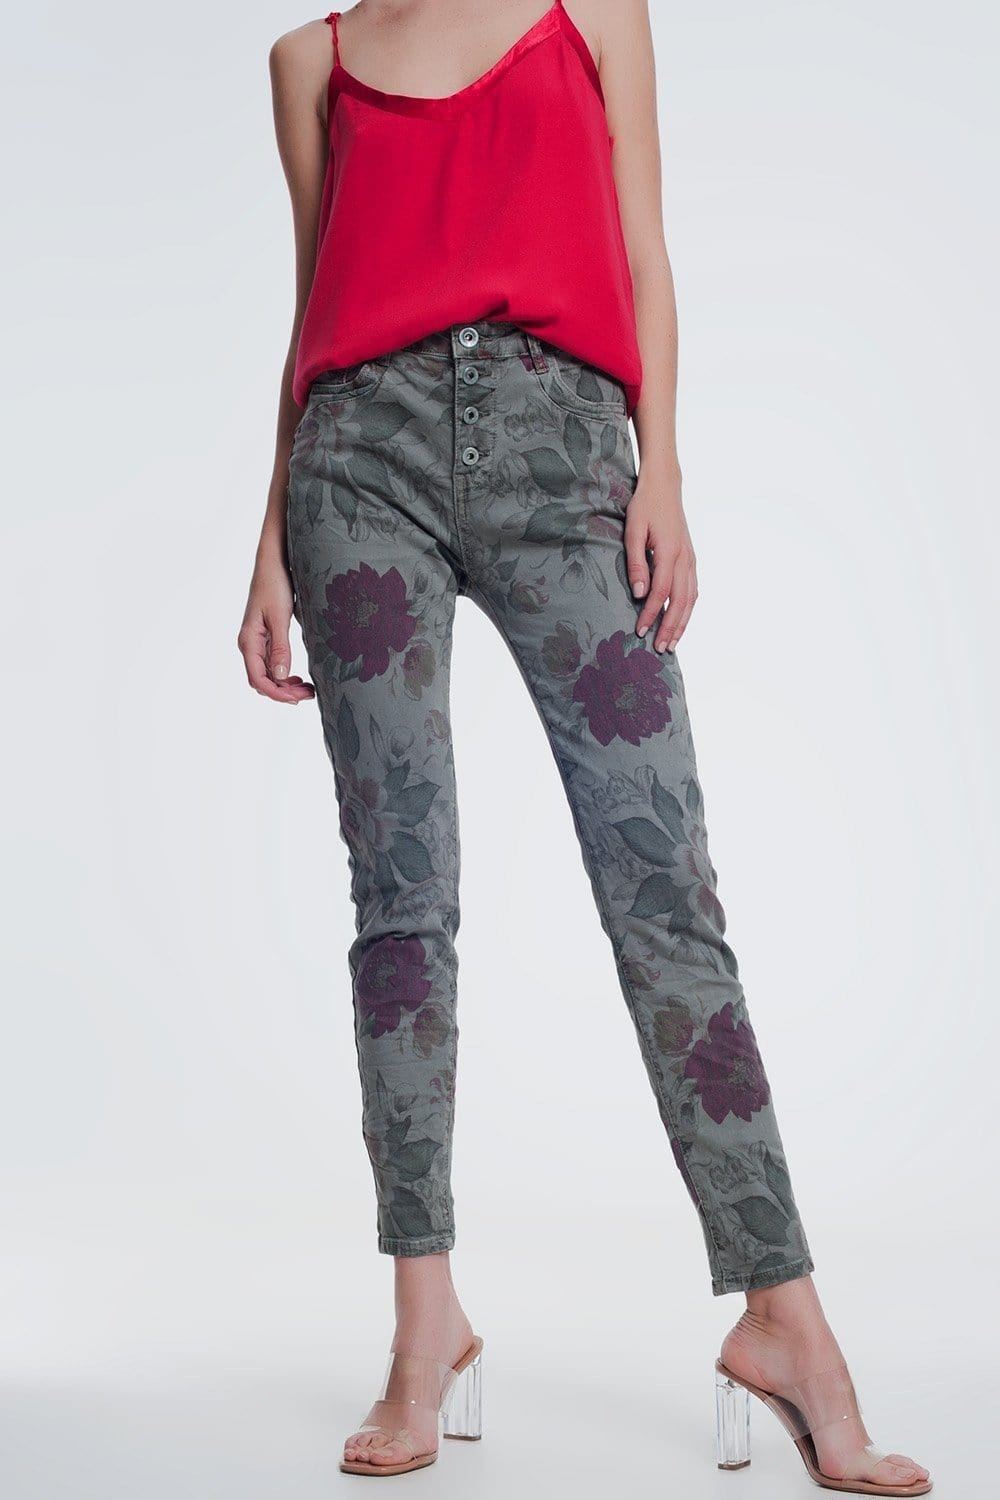 Khaki boyfriend jeans with floral print - Himelhoch's